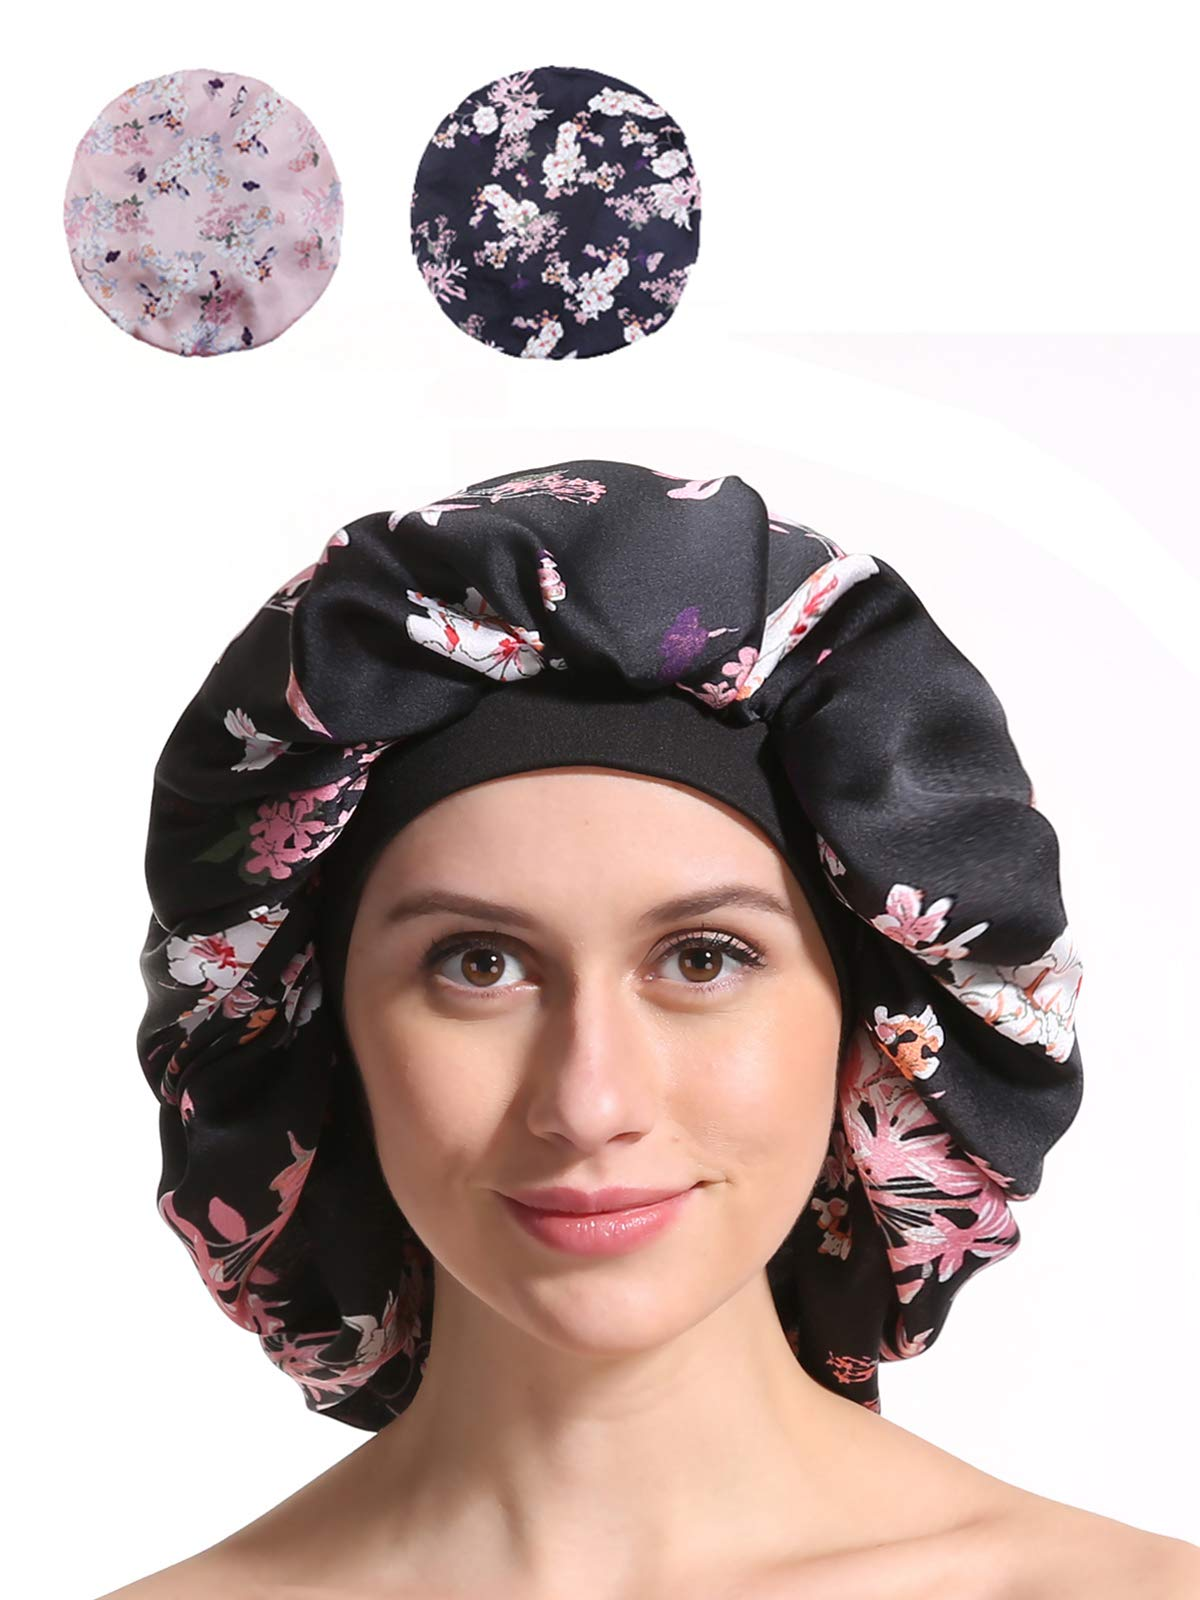 Satin Silk Bonnet Sleep Cap - Printing Soft Extra Large Wide Band S Women Night Hat For Long Curly Natural Hair Cap Salon Silk Scarf Chemo Patient Slouch Slouchy by Enjoy Holiday 1981